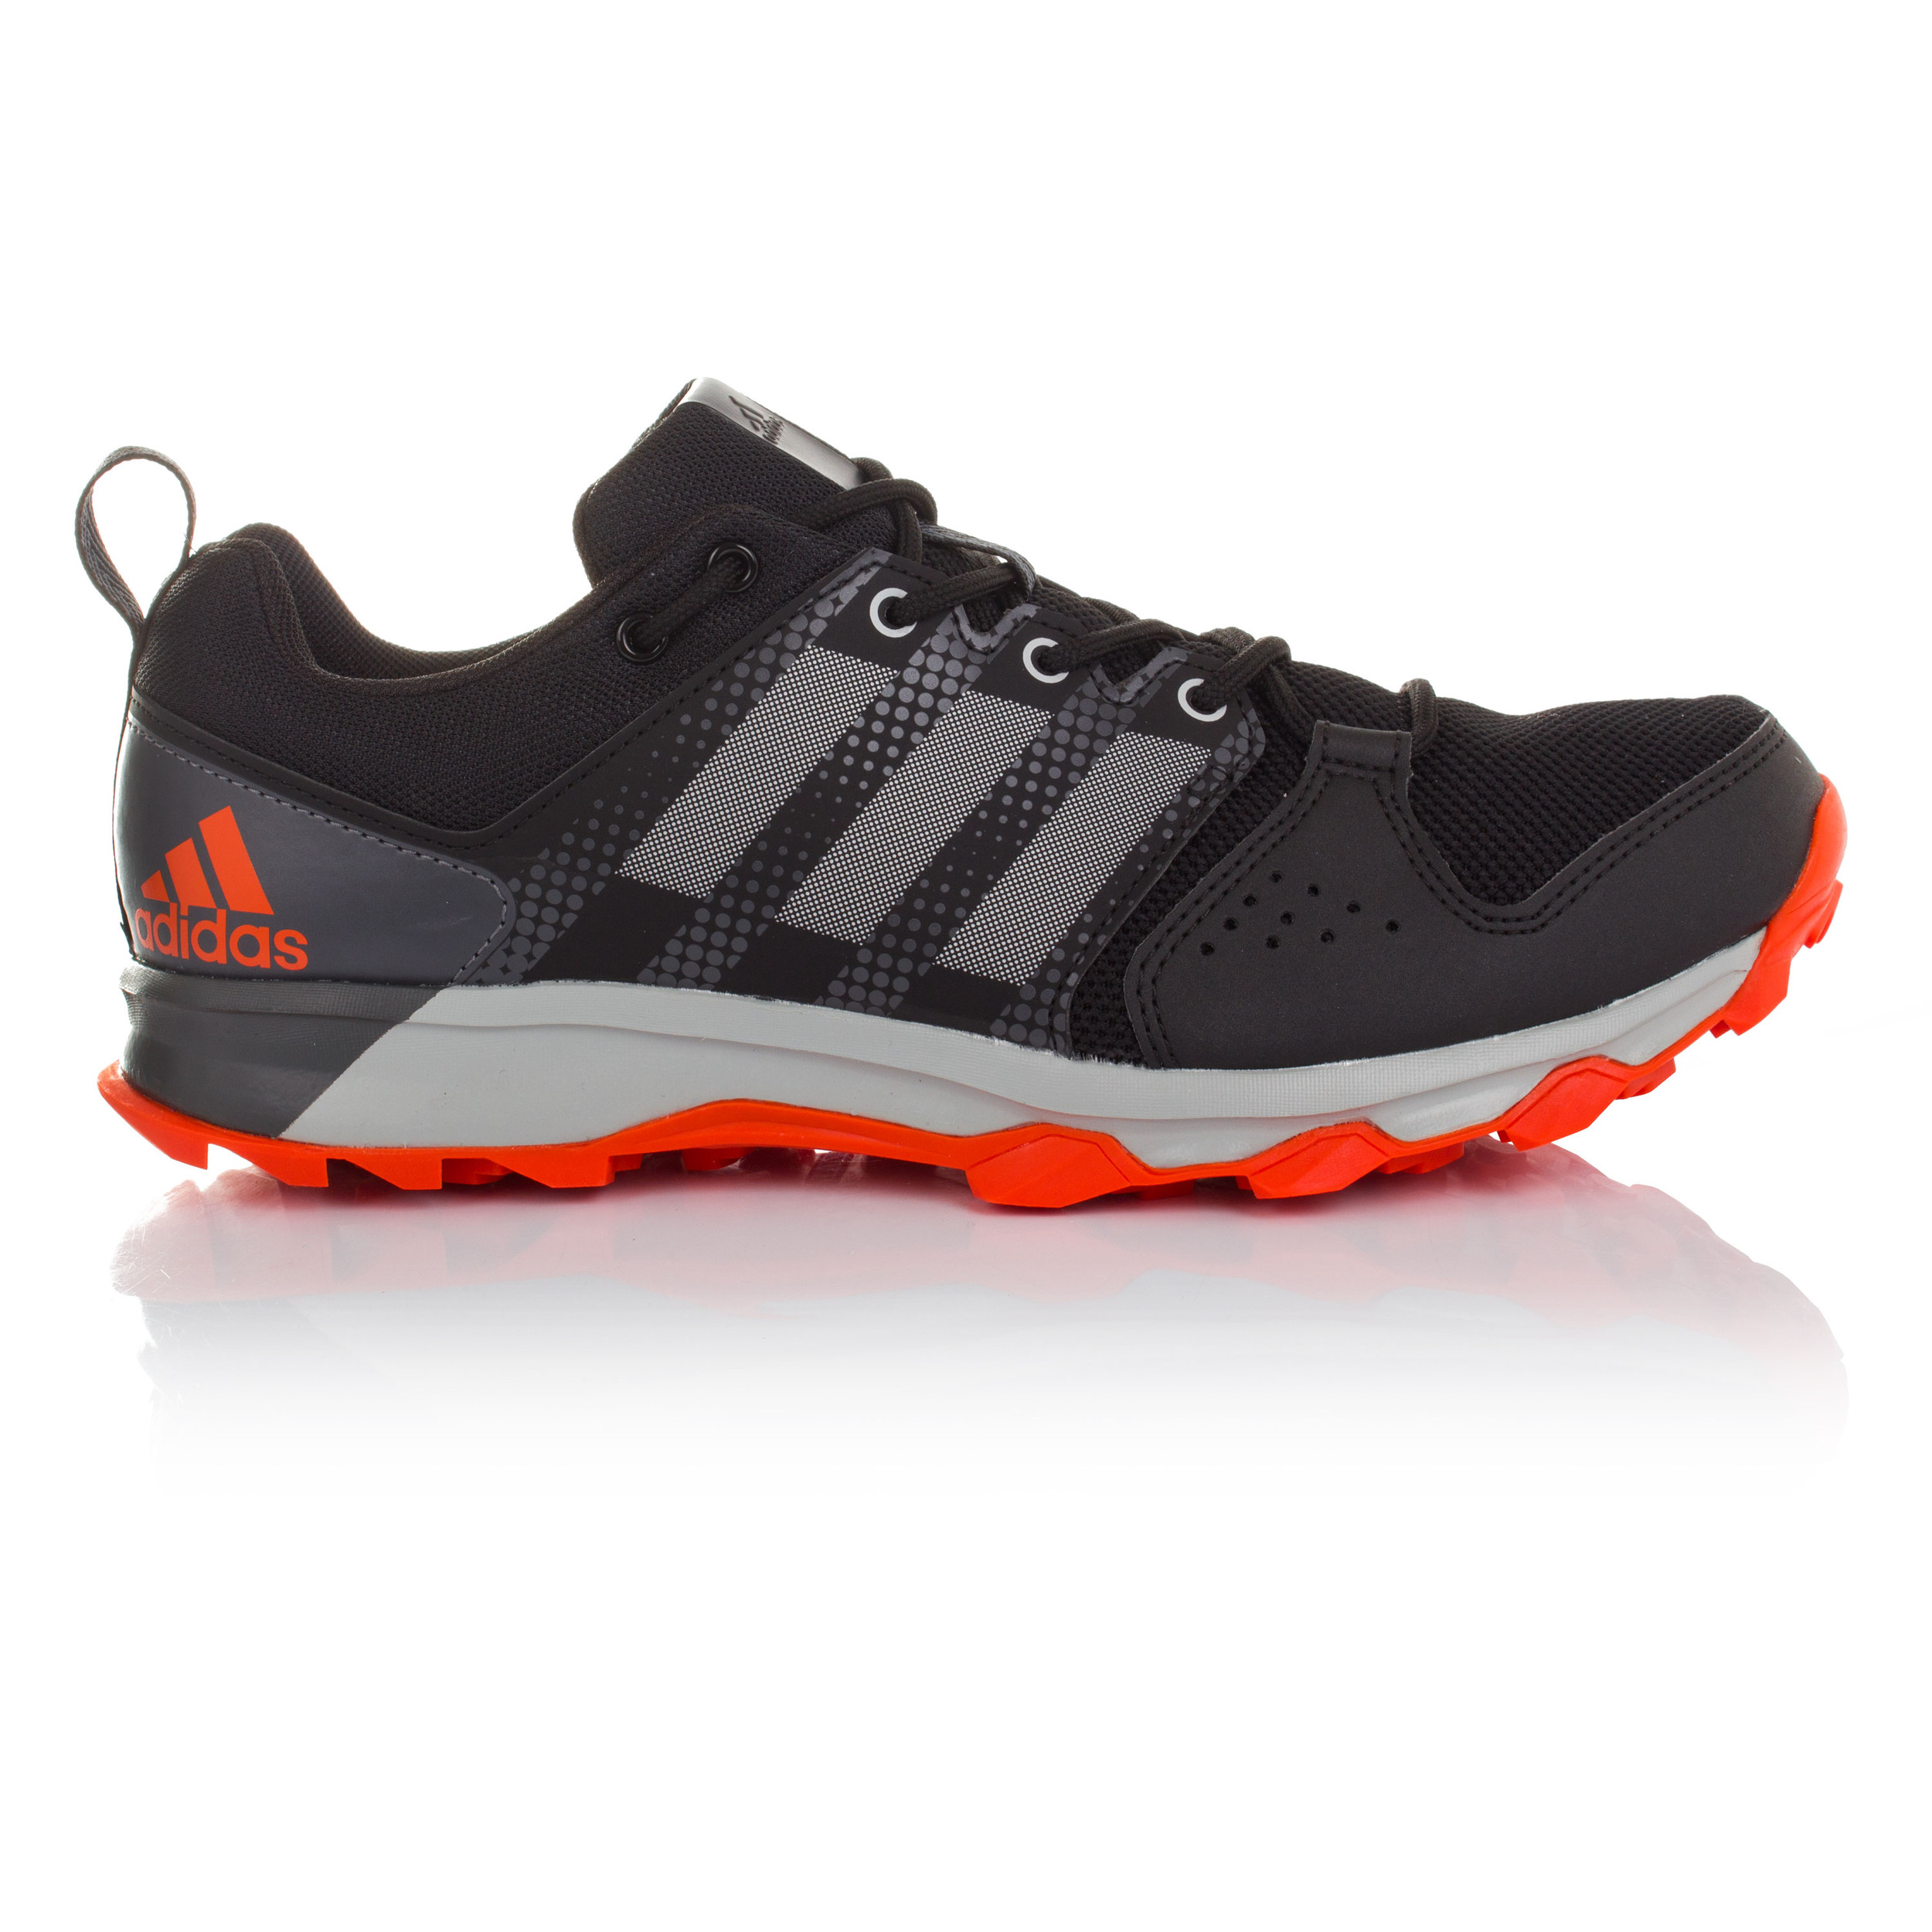 Trail Running Shoes Ebay Uk